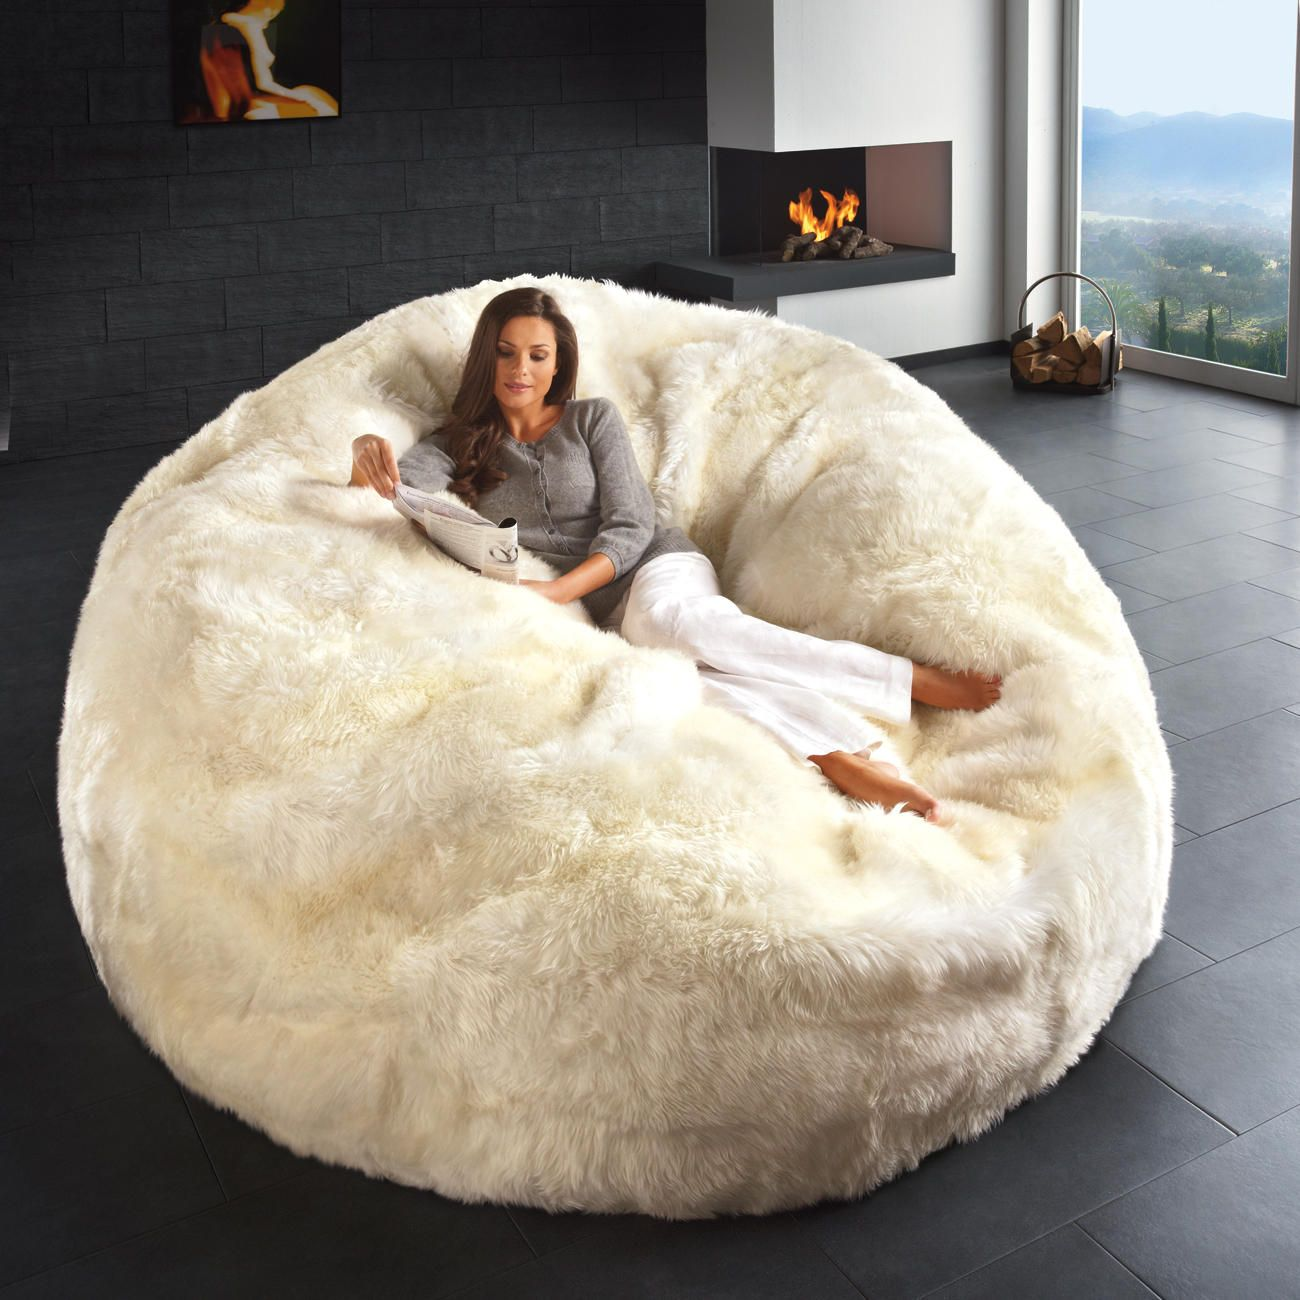 Superb Omfg Want Huge Comfy Sitting Bag Pro Idee Concept Evergreenethics Interior Chair Design Evergreenethicsorg